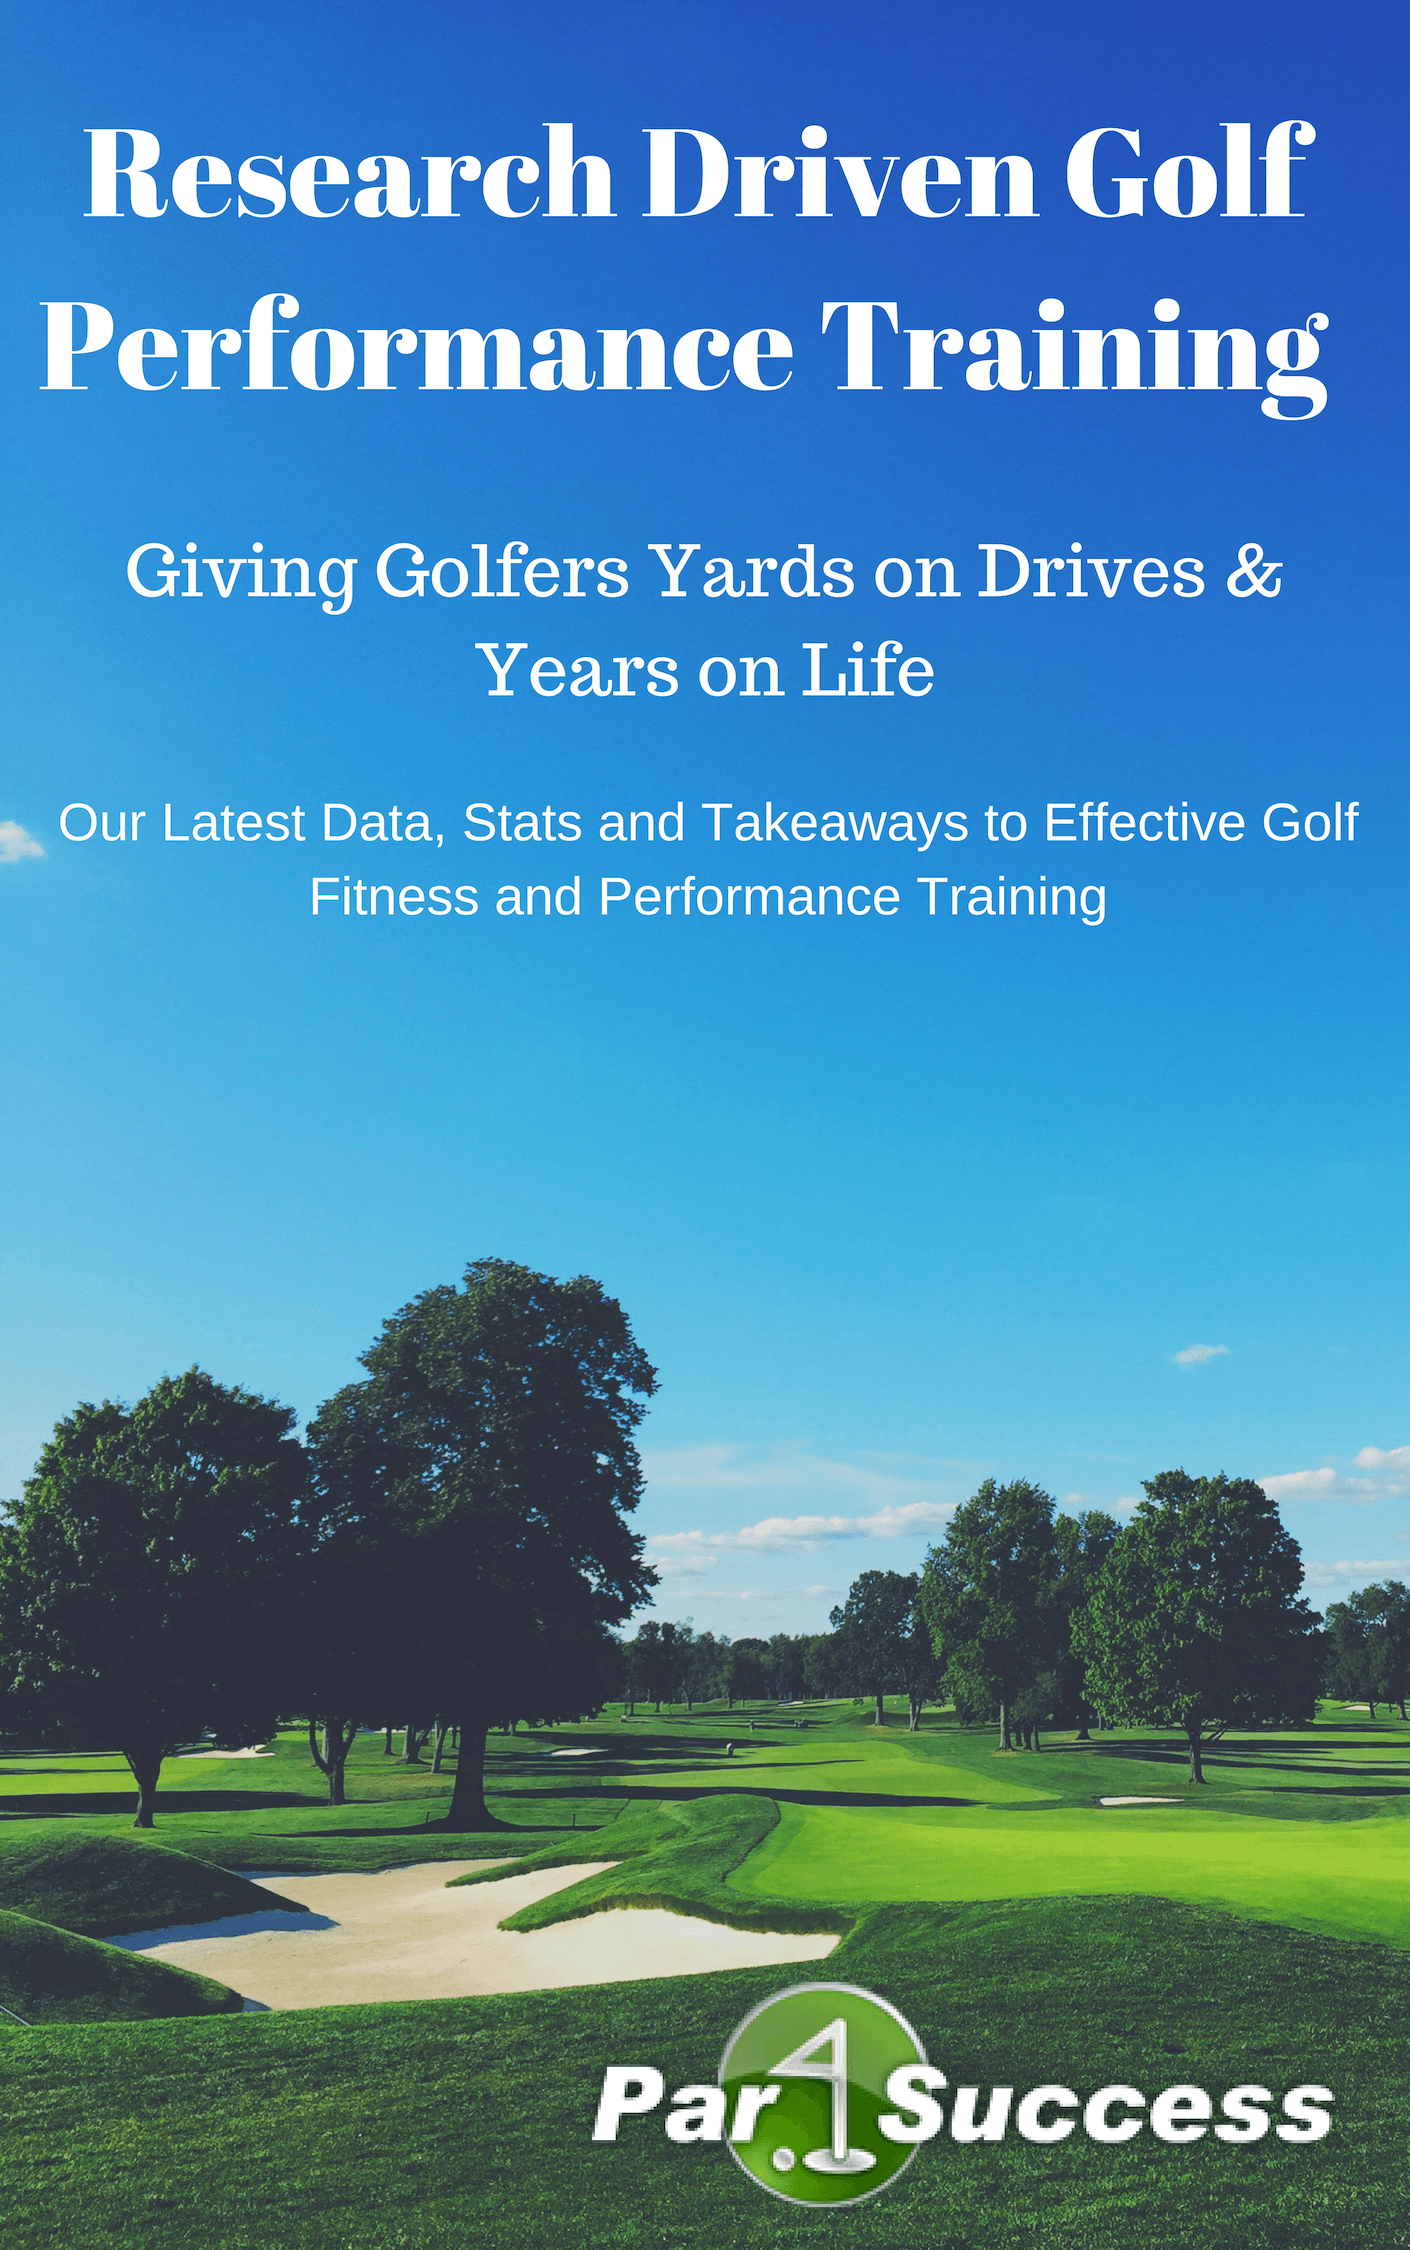 Research Driven Golf Performance Training Cover